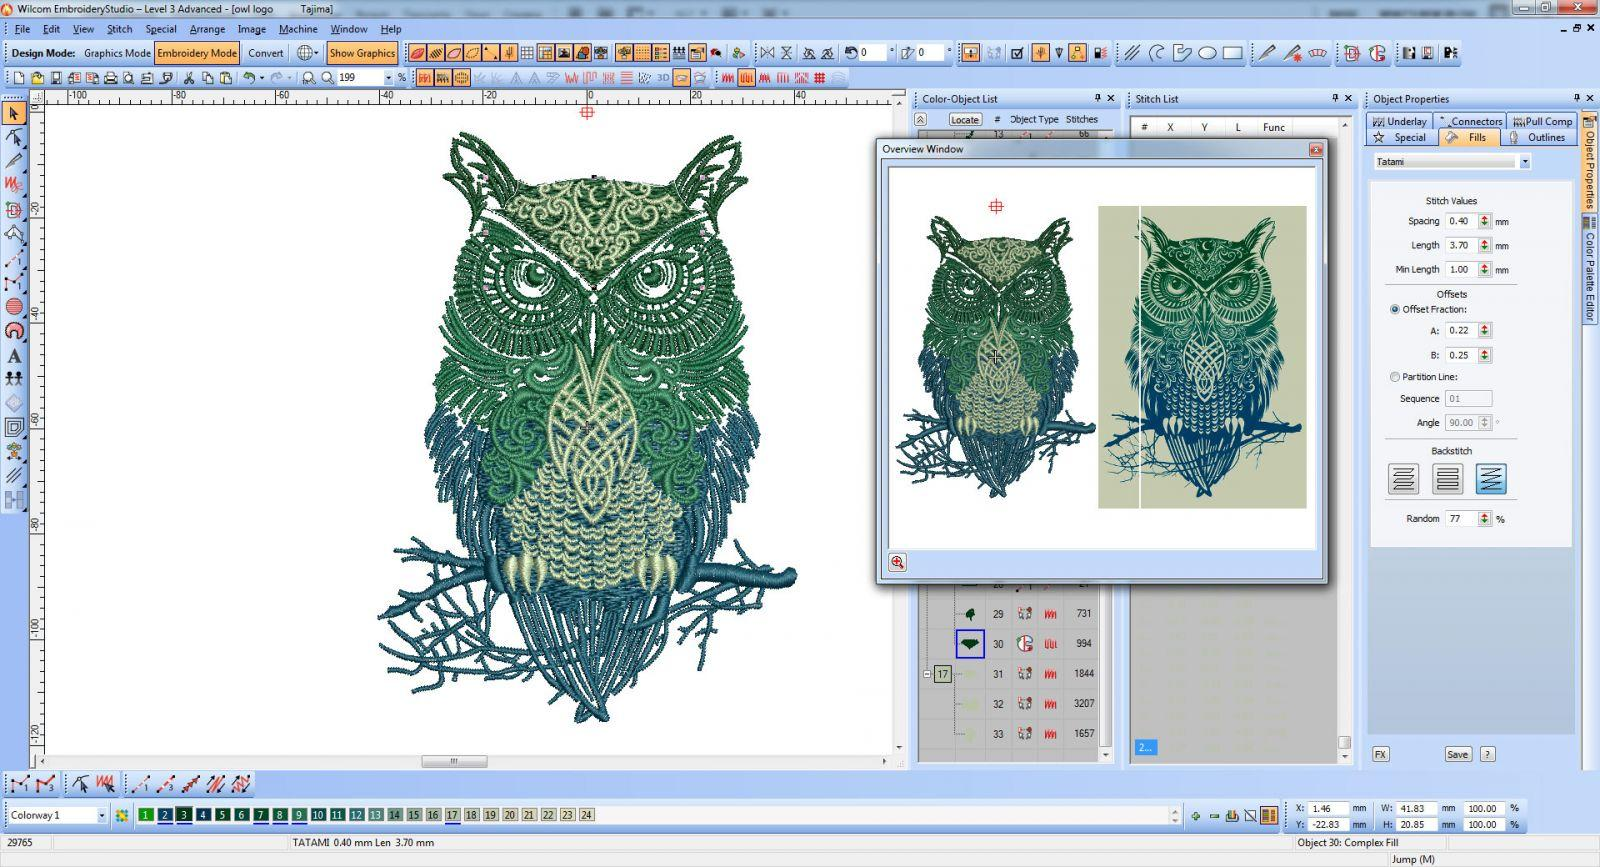 Tribal Owl embroidery design screen shot at Wilcom software